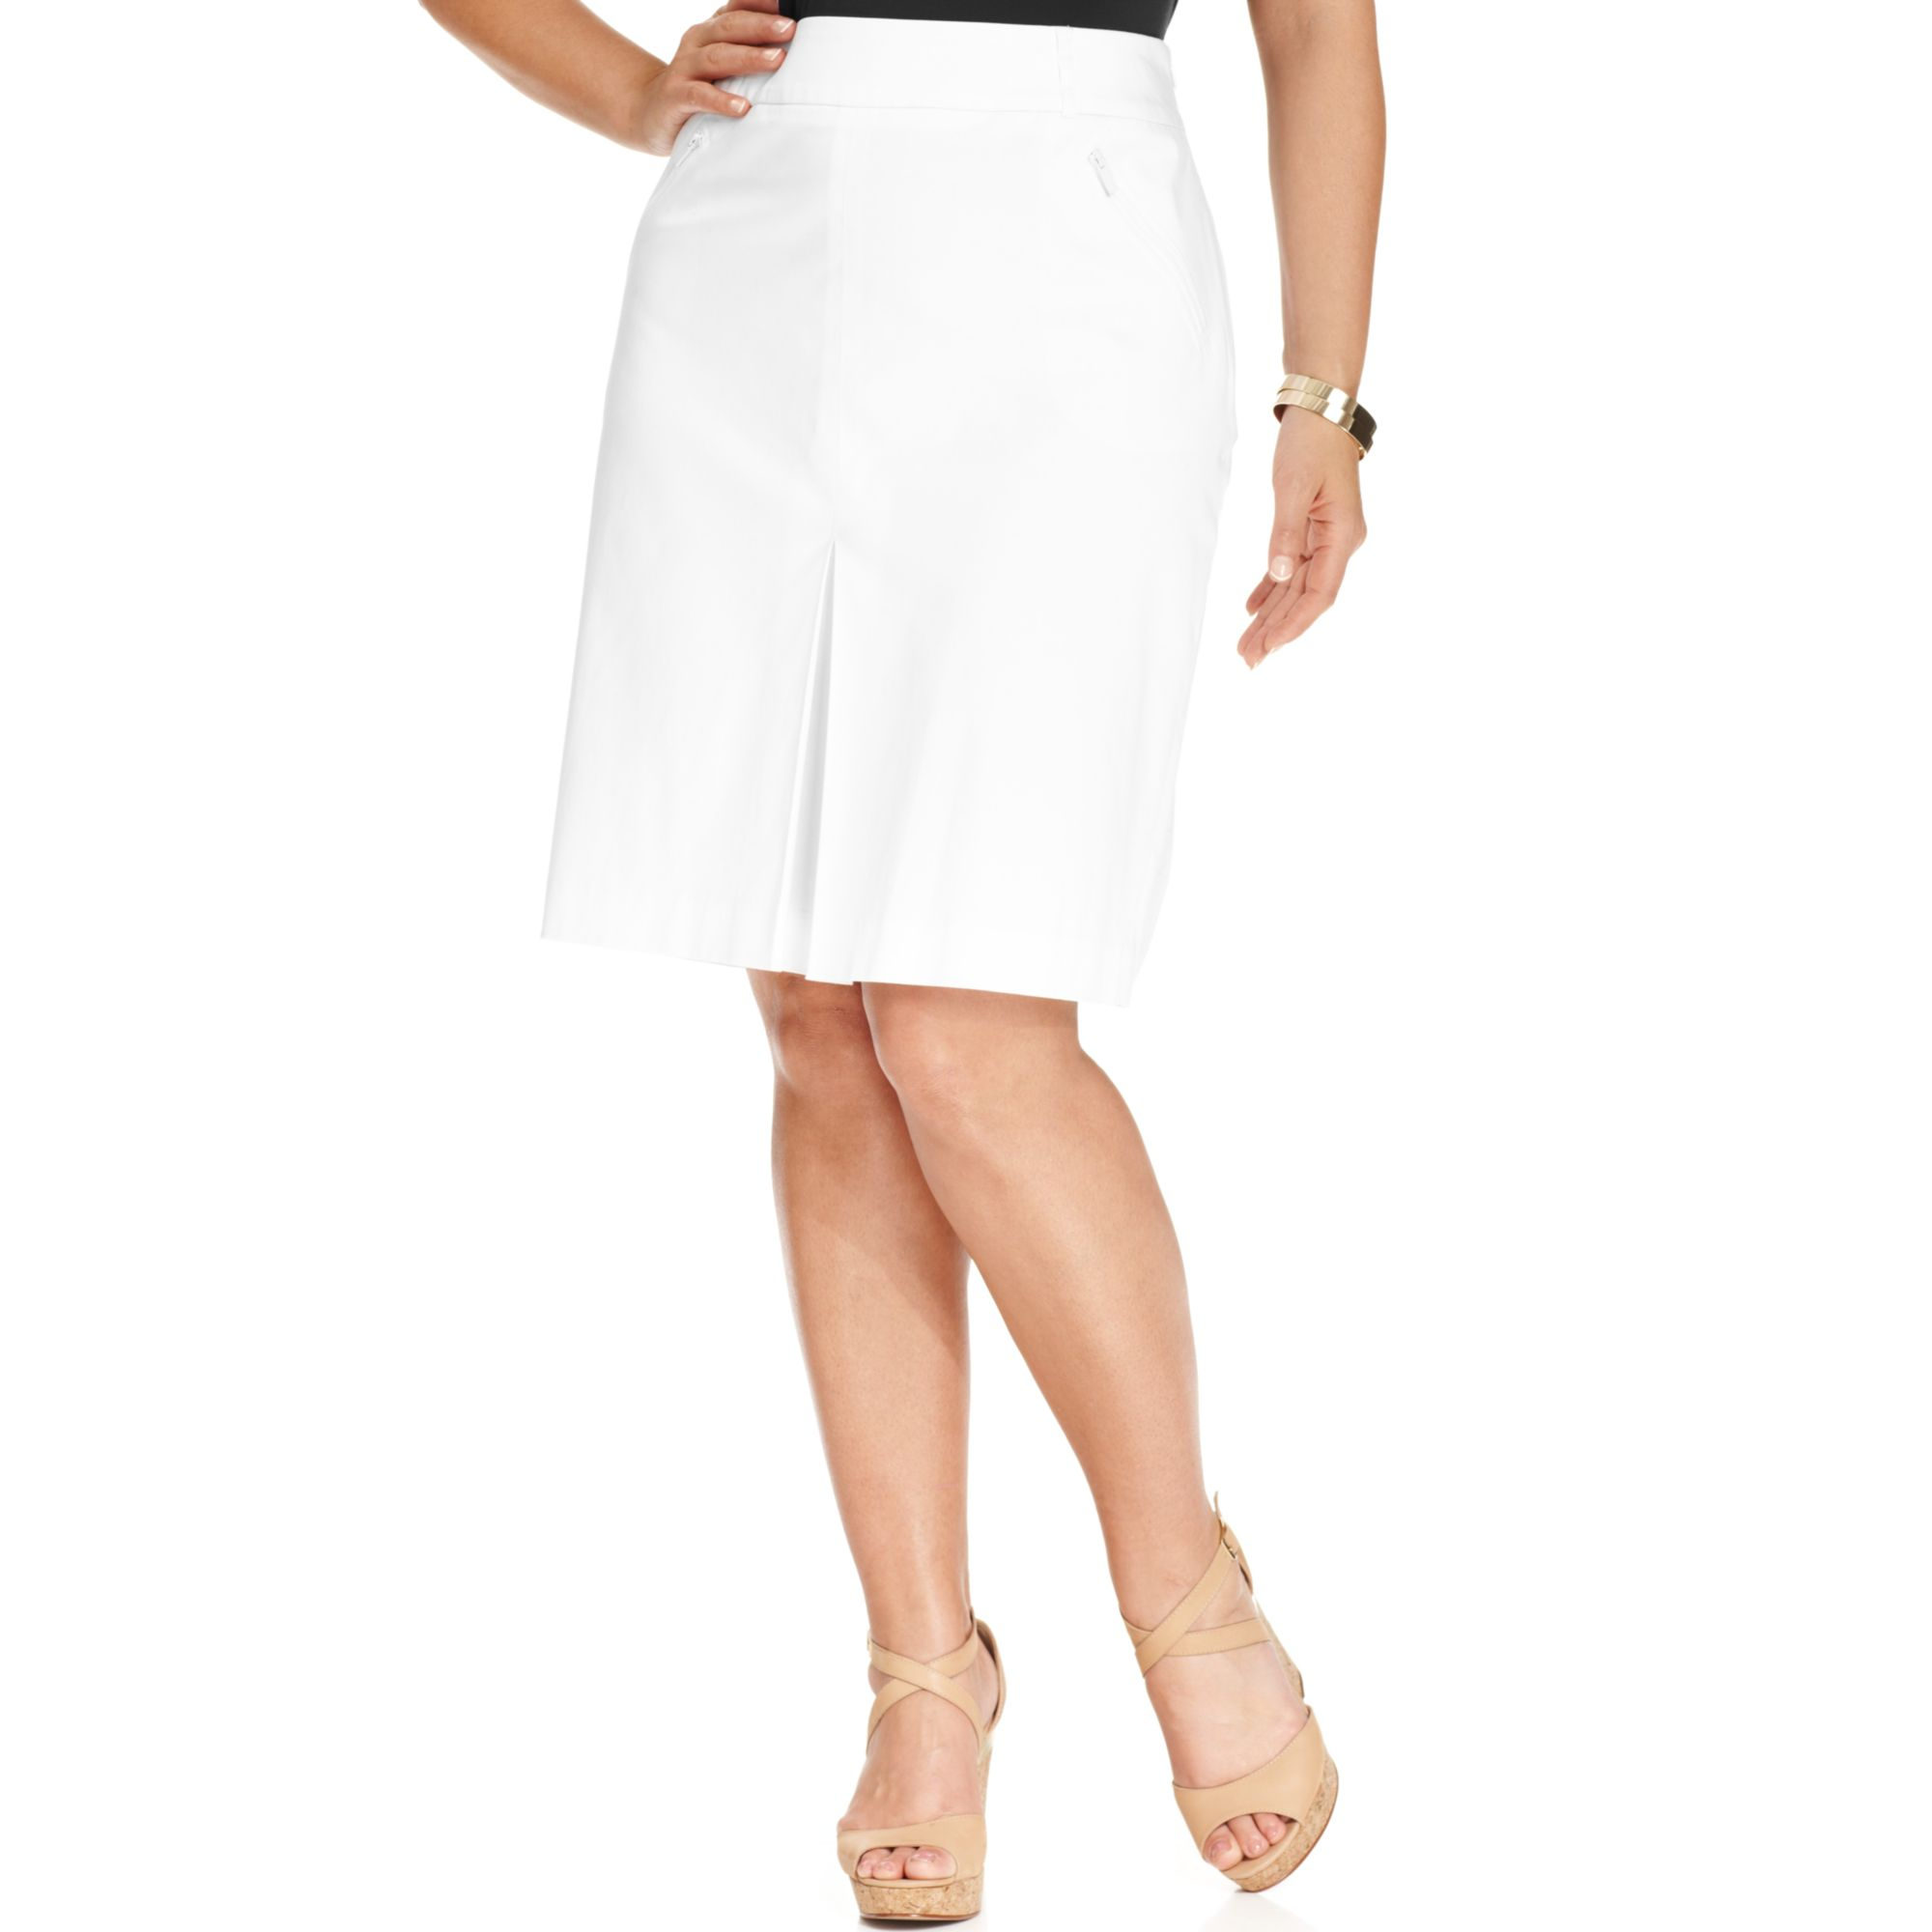 FREE SHIPPING AVAILABLE! Shop eternal-sv.tk and save on White Plus Size Skirts.